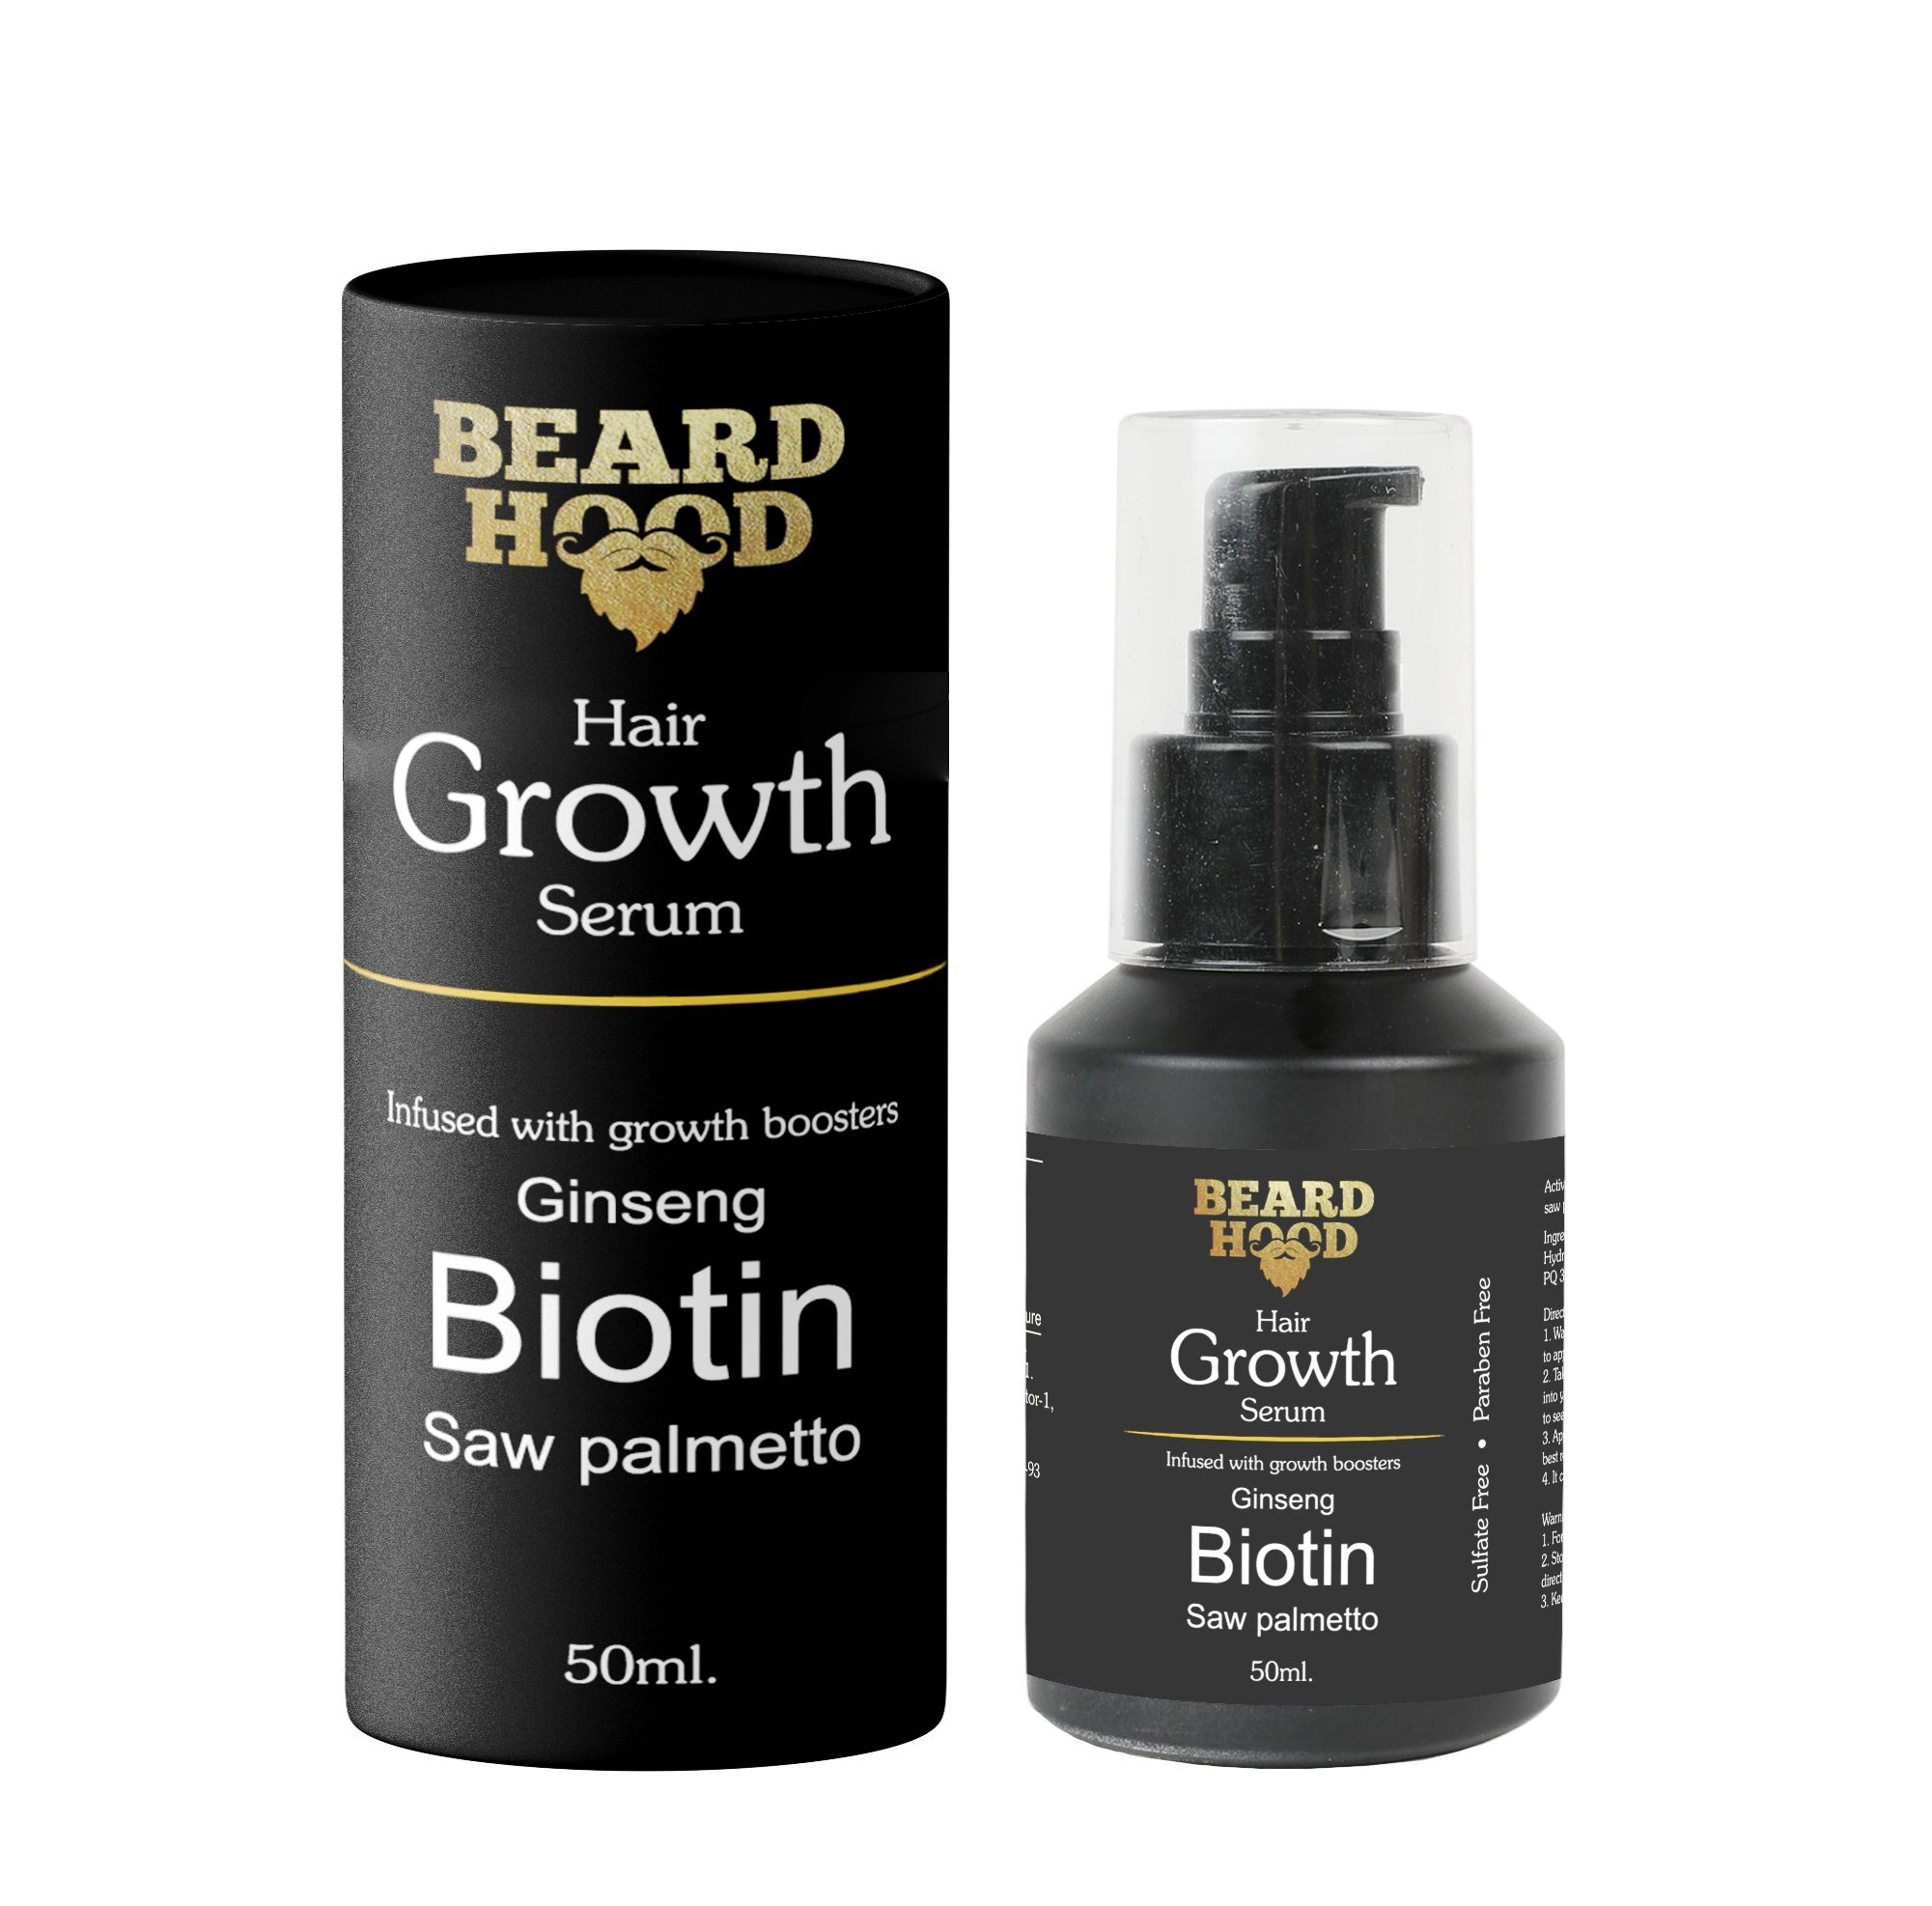 Beardhood Beard and Hair Growth Serum Growth Boosters, White Transparent, 50ml product image